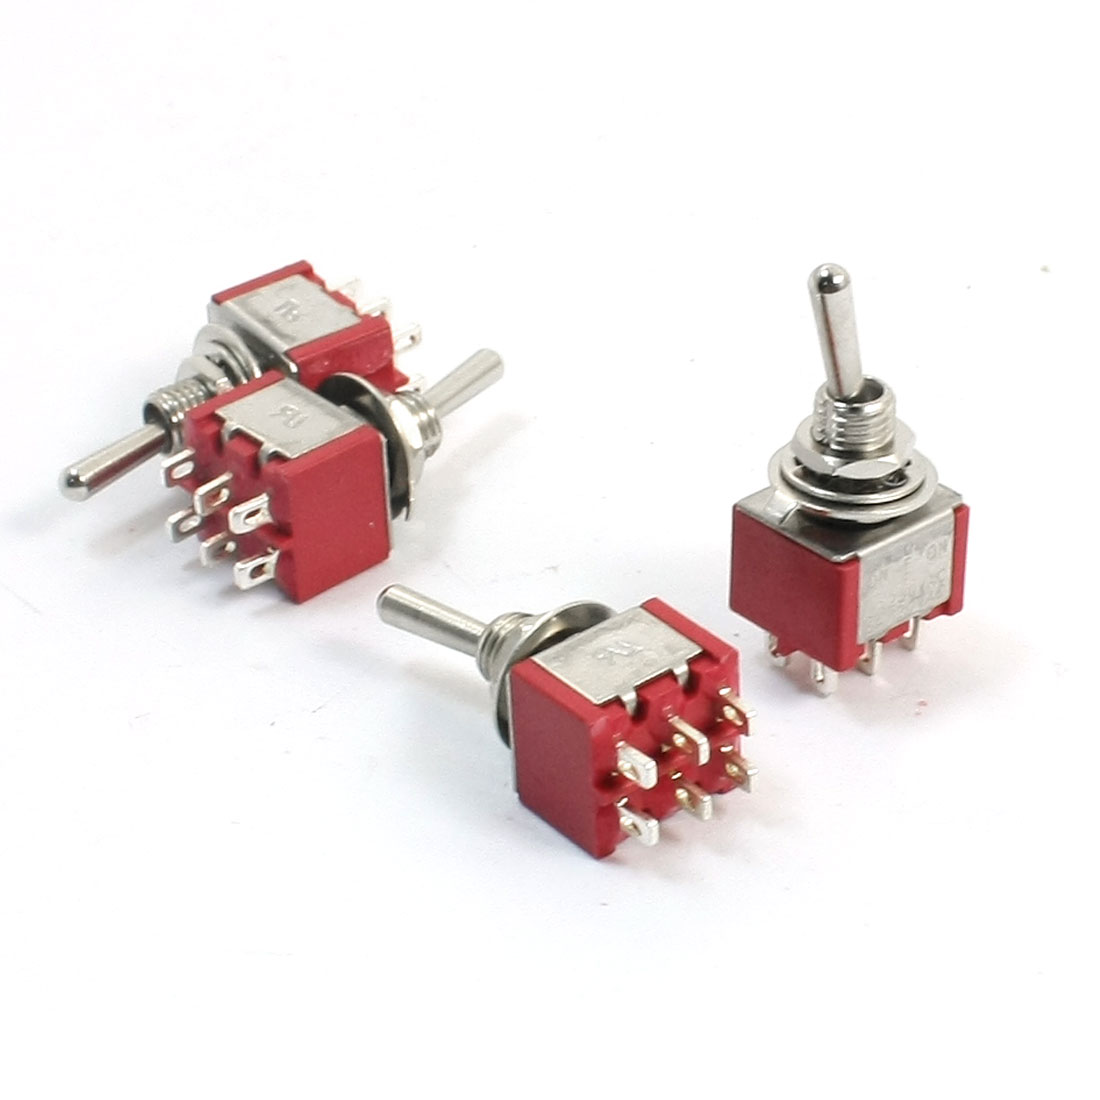 AC 120V 5A ON/OFF/ON 3 Positions Latching Electric Toggle Switch Red 4pcs